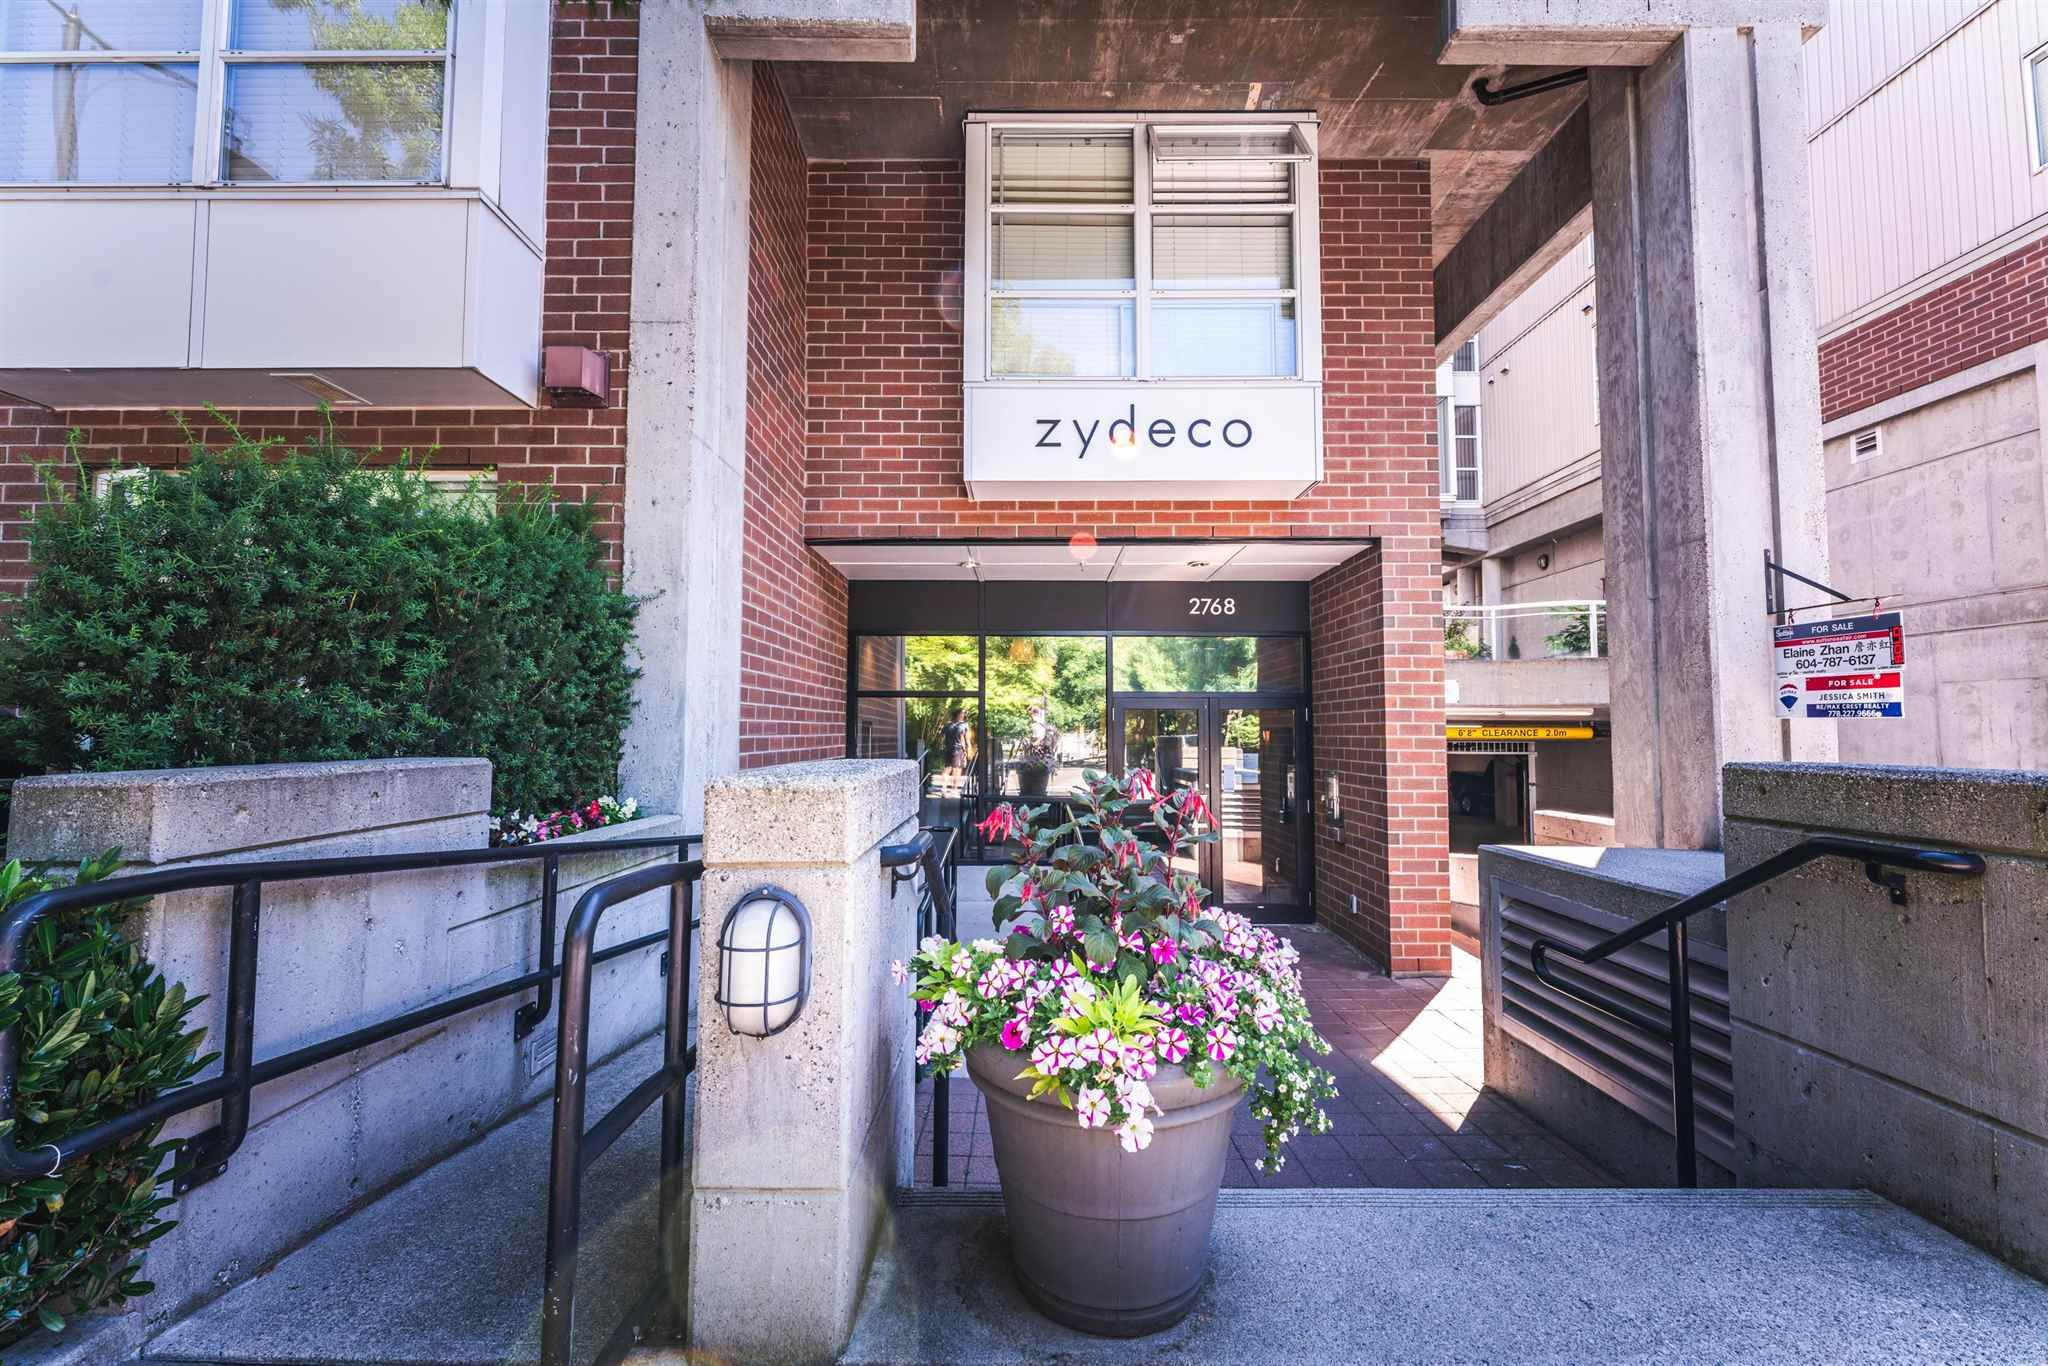 """Main Photo: 223 2768 CRANBERRY Drive in Vancouver: Kitsilano Condo for sale in """"ZYDECO"""" (Vancouver West)  : MLS®# R2595146"""